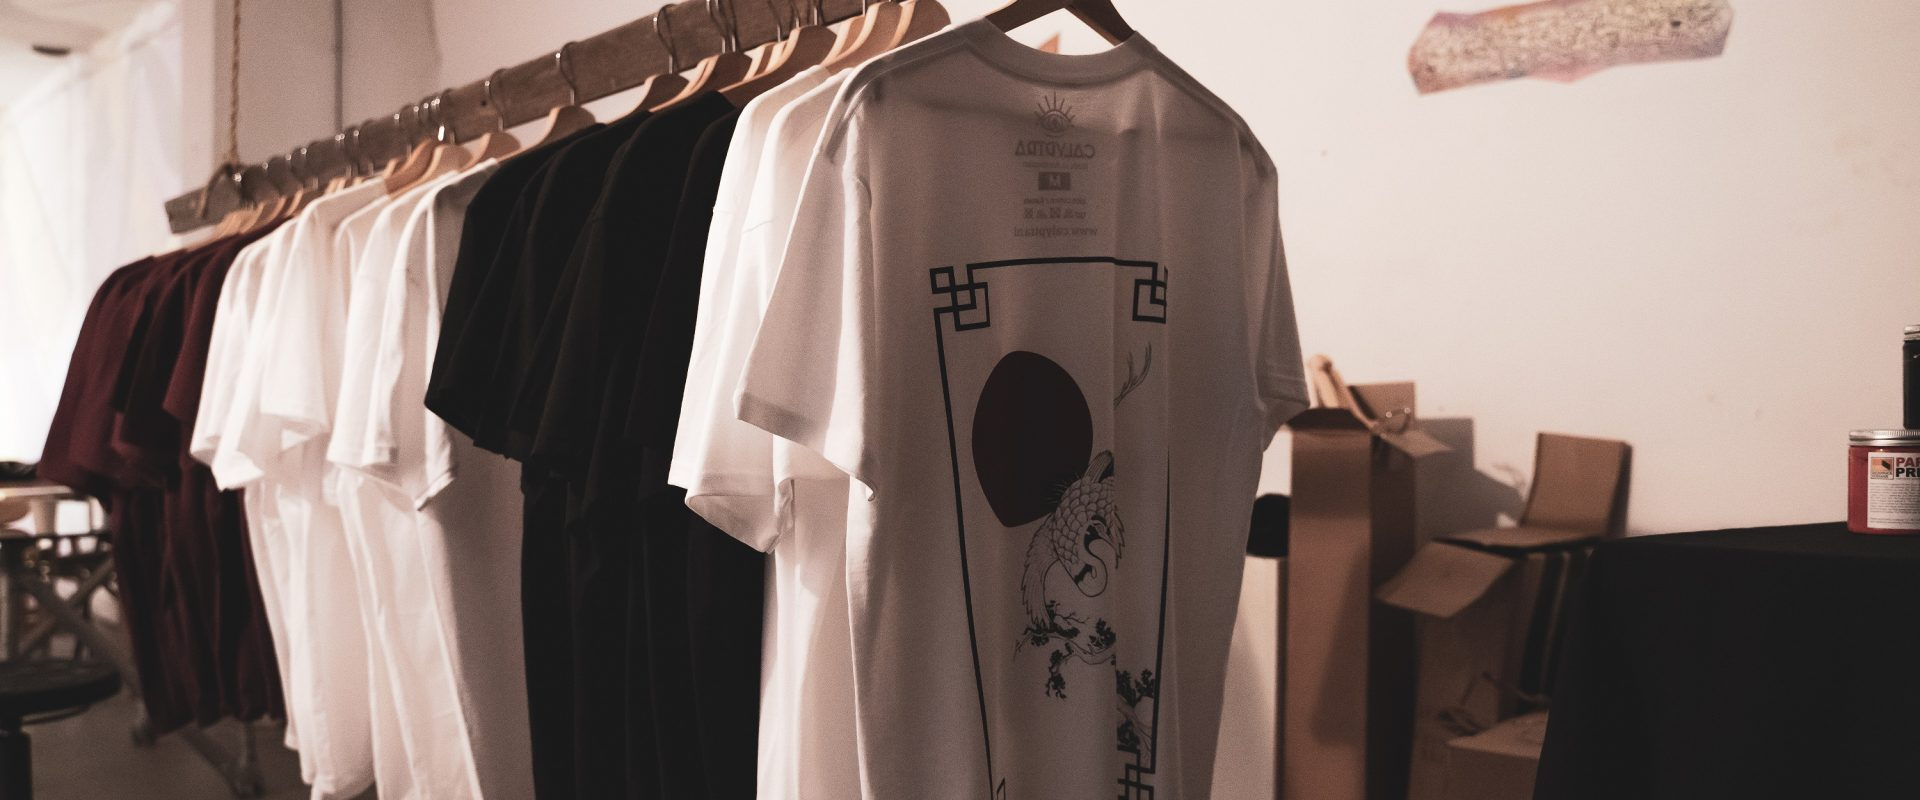 Streetwear, skateboards and more